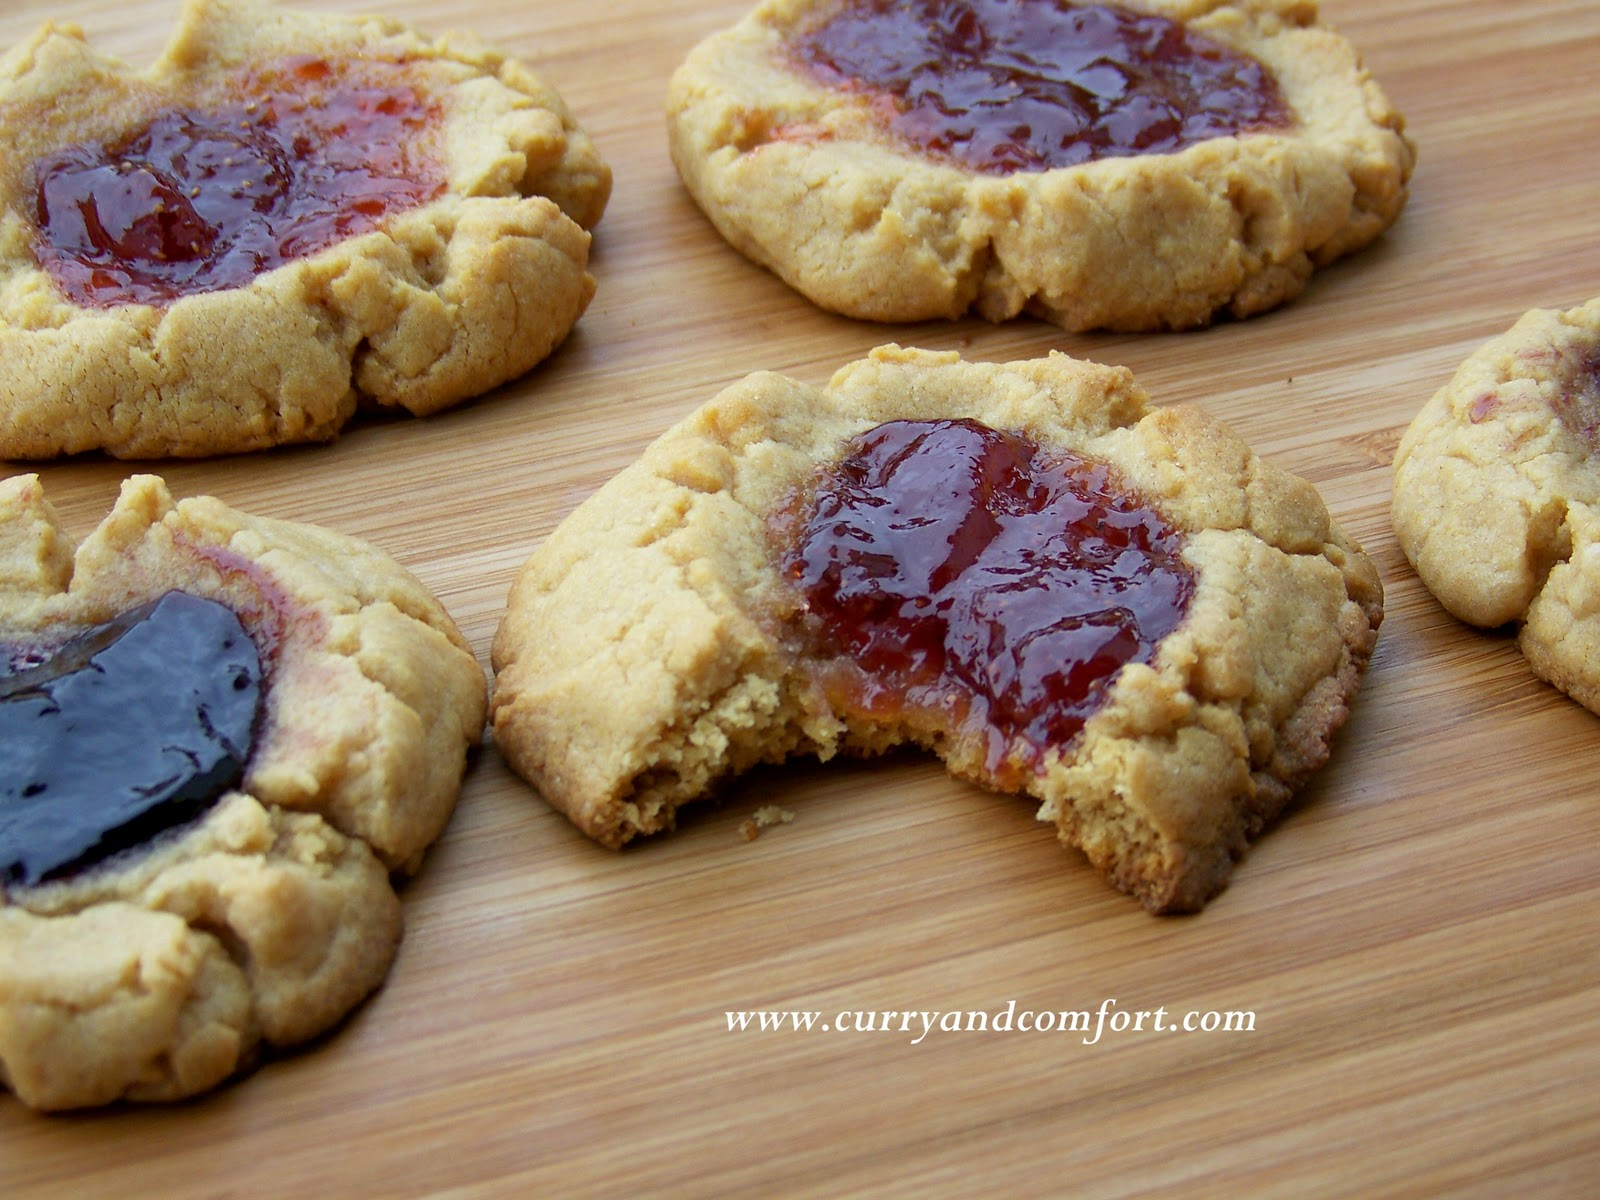 Kitchen Simmer: Peanut Butter and Jelly Cookies